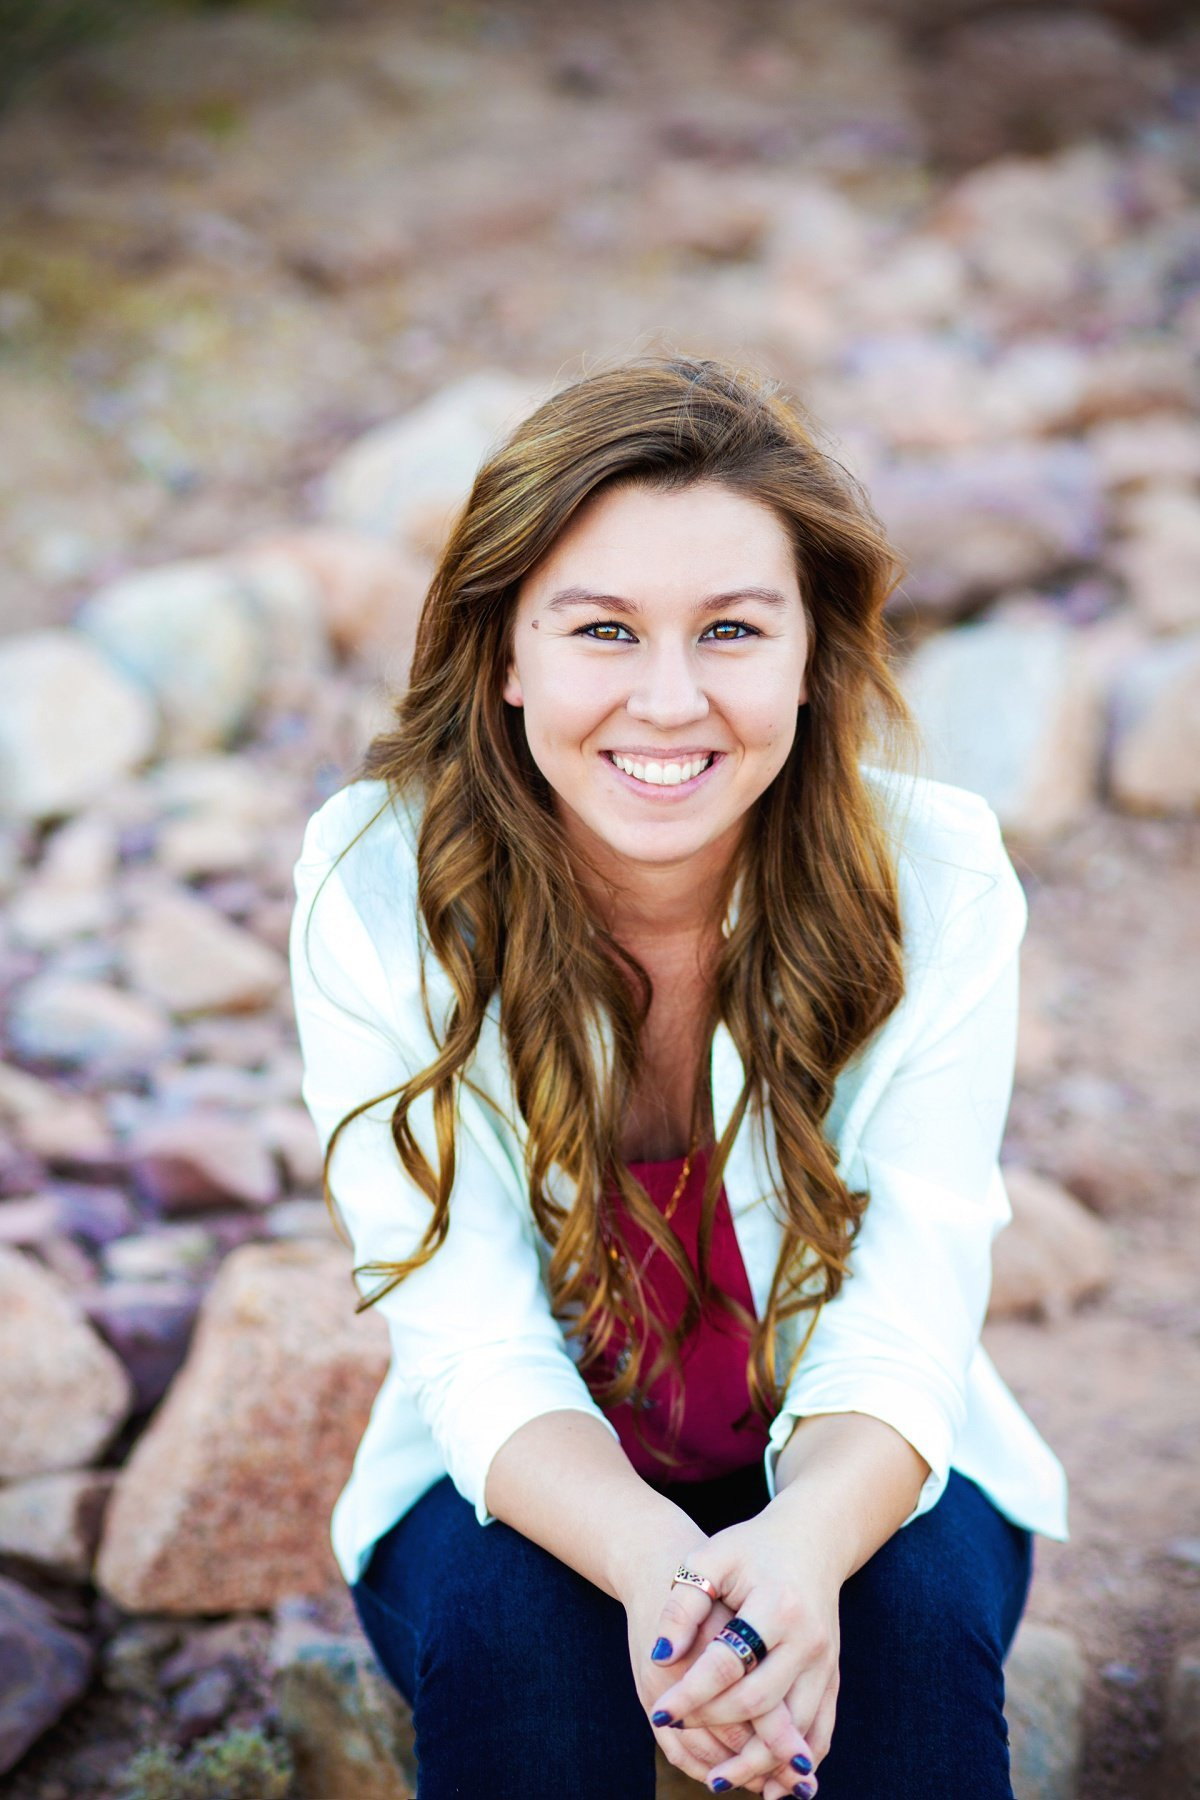 Inidividuals Portraits Senior Pictures Headshots Professional Photography Session Graduation Colorado Springs (65)